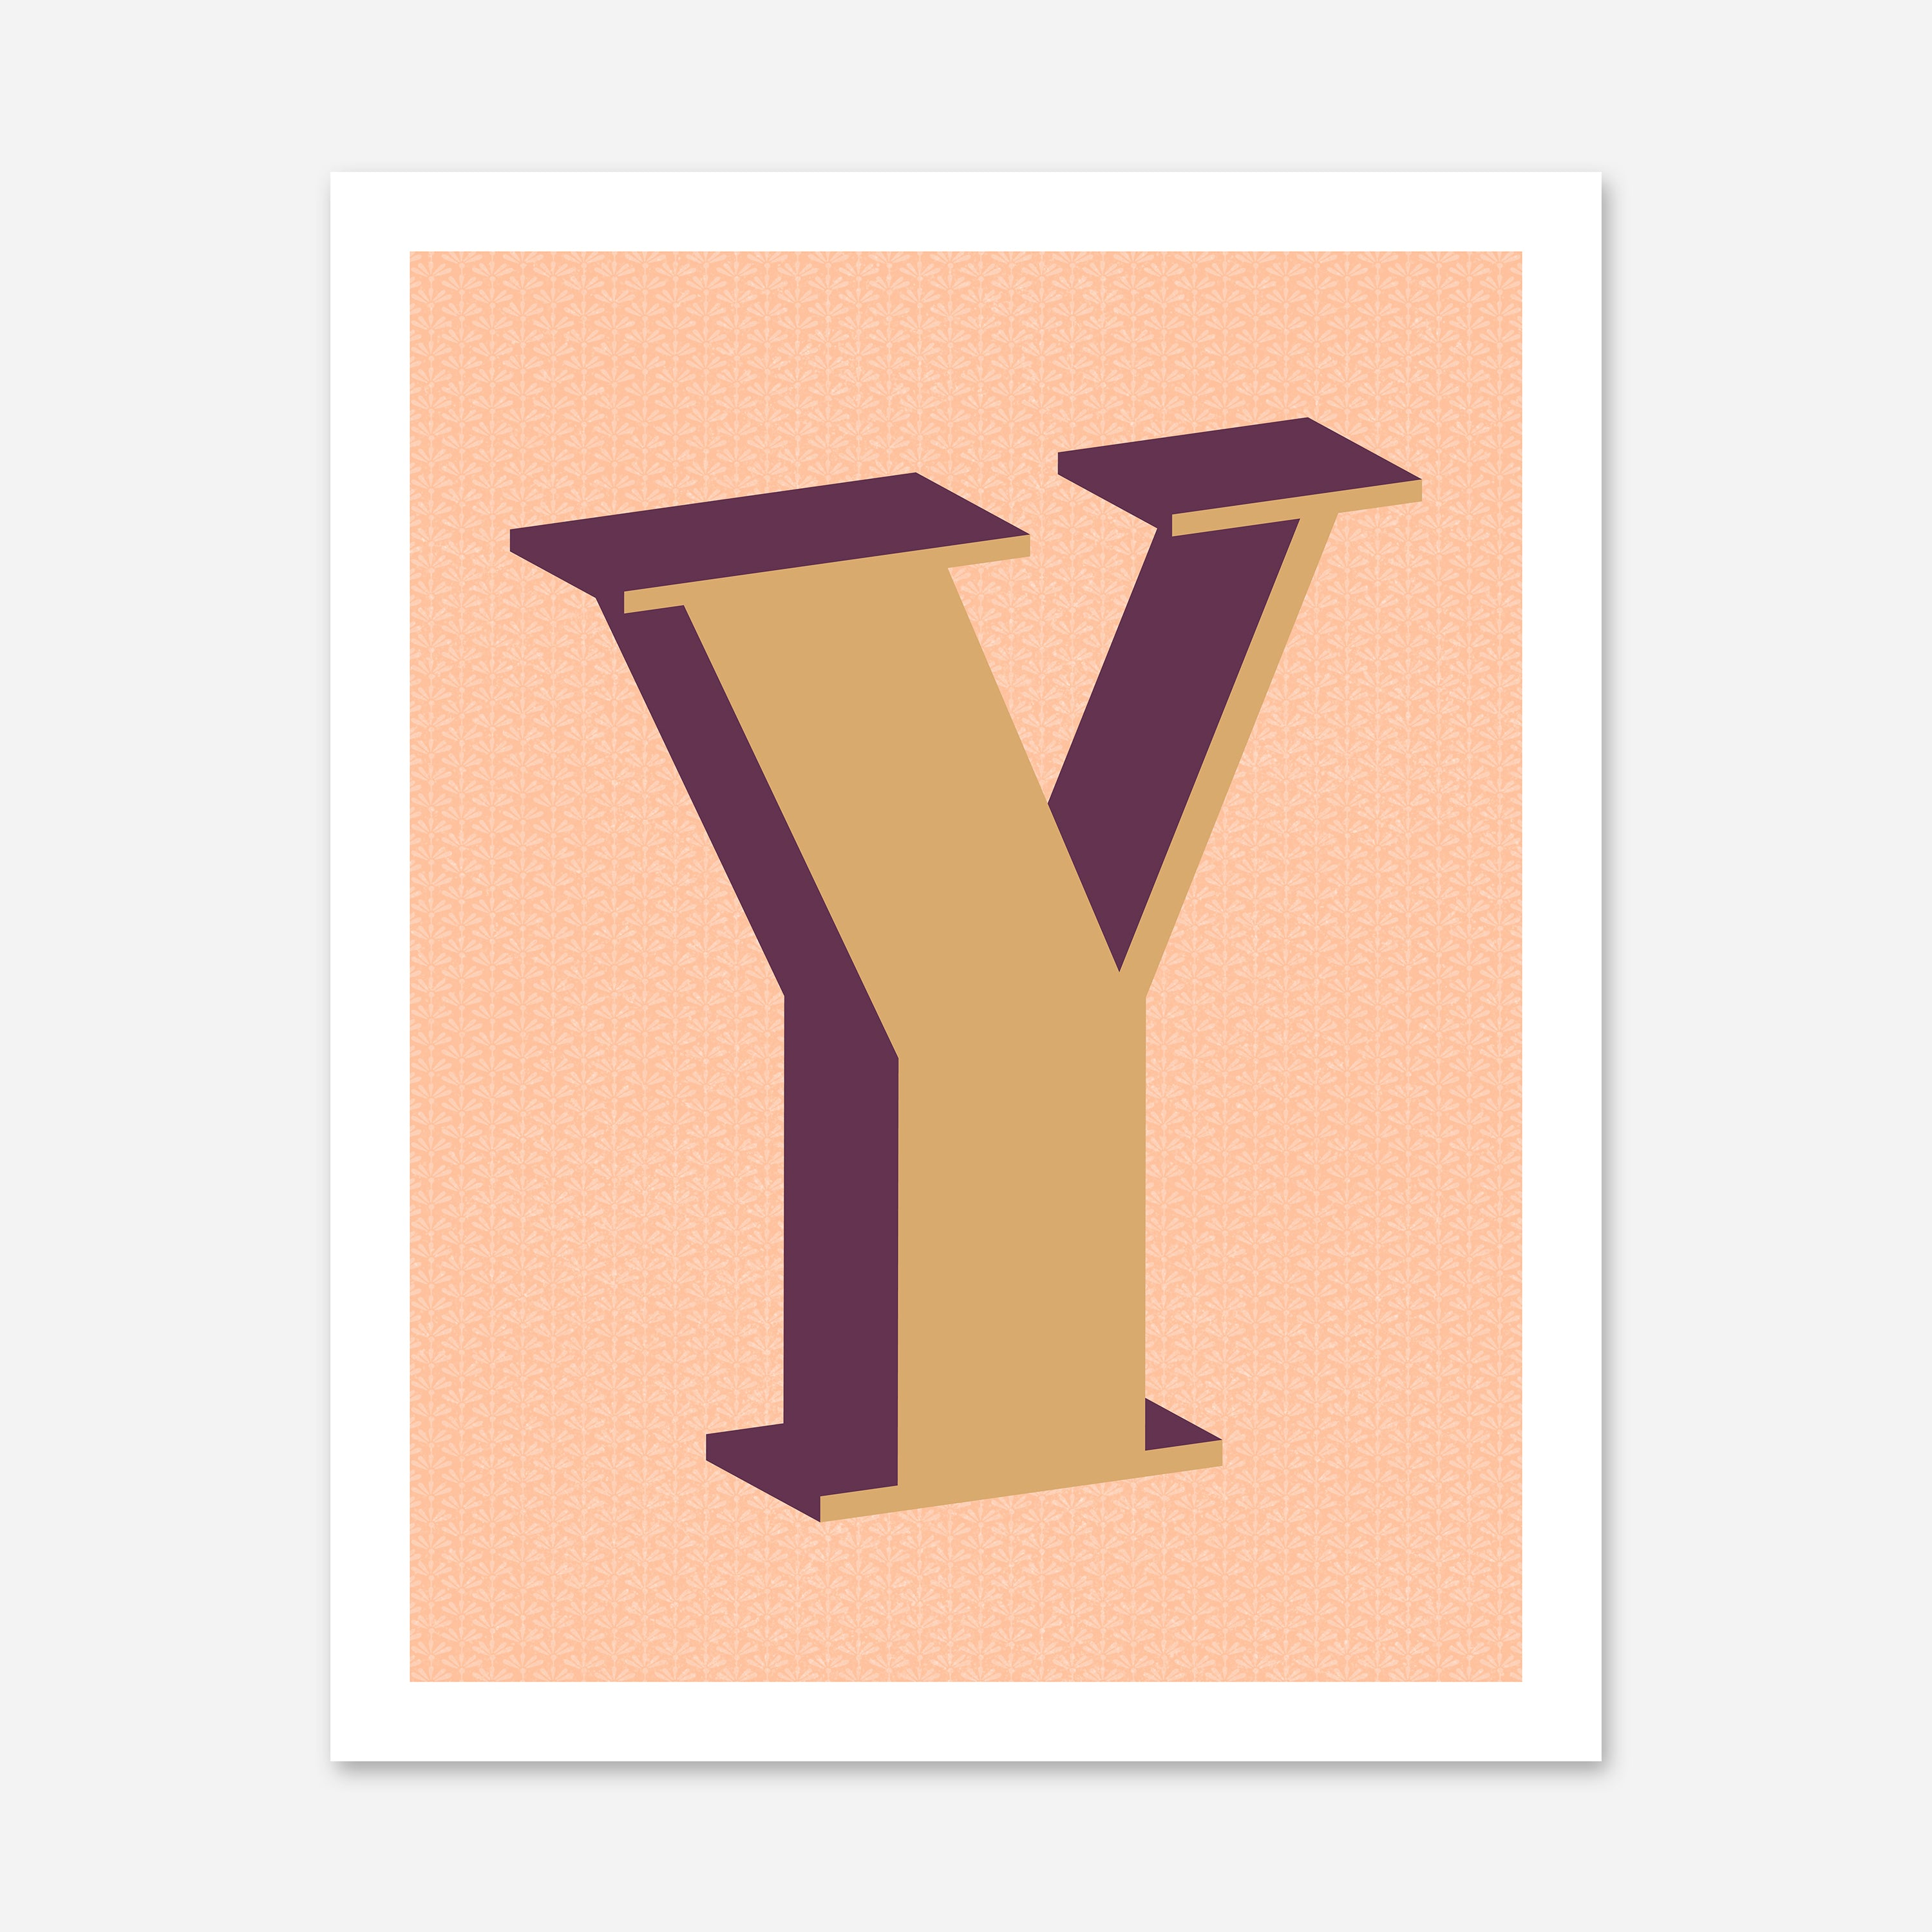 The Letter Y